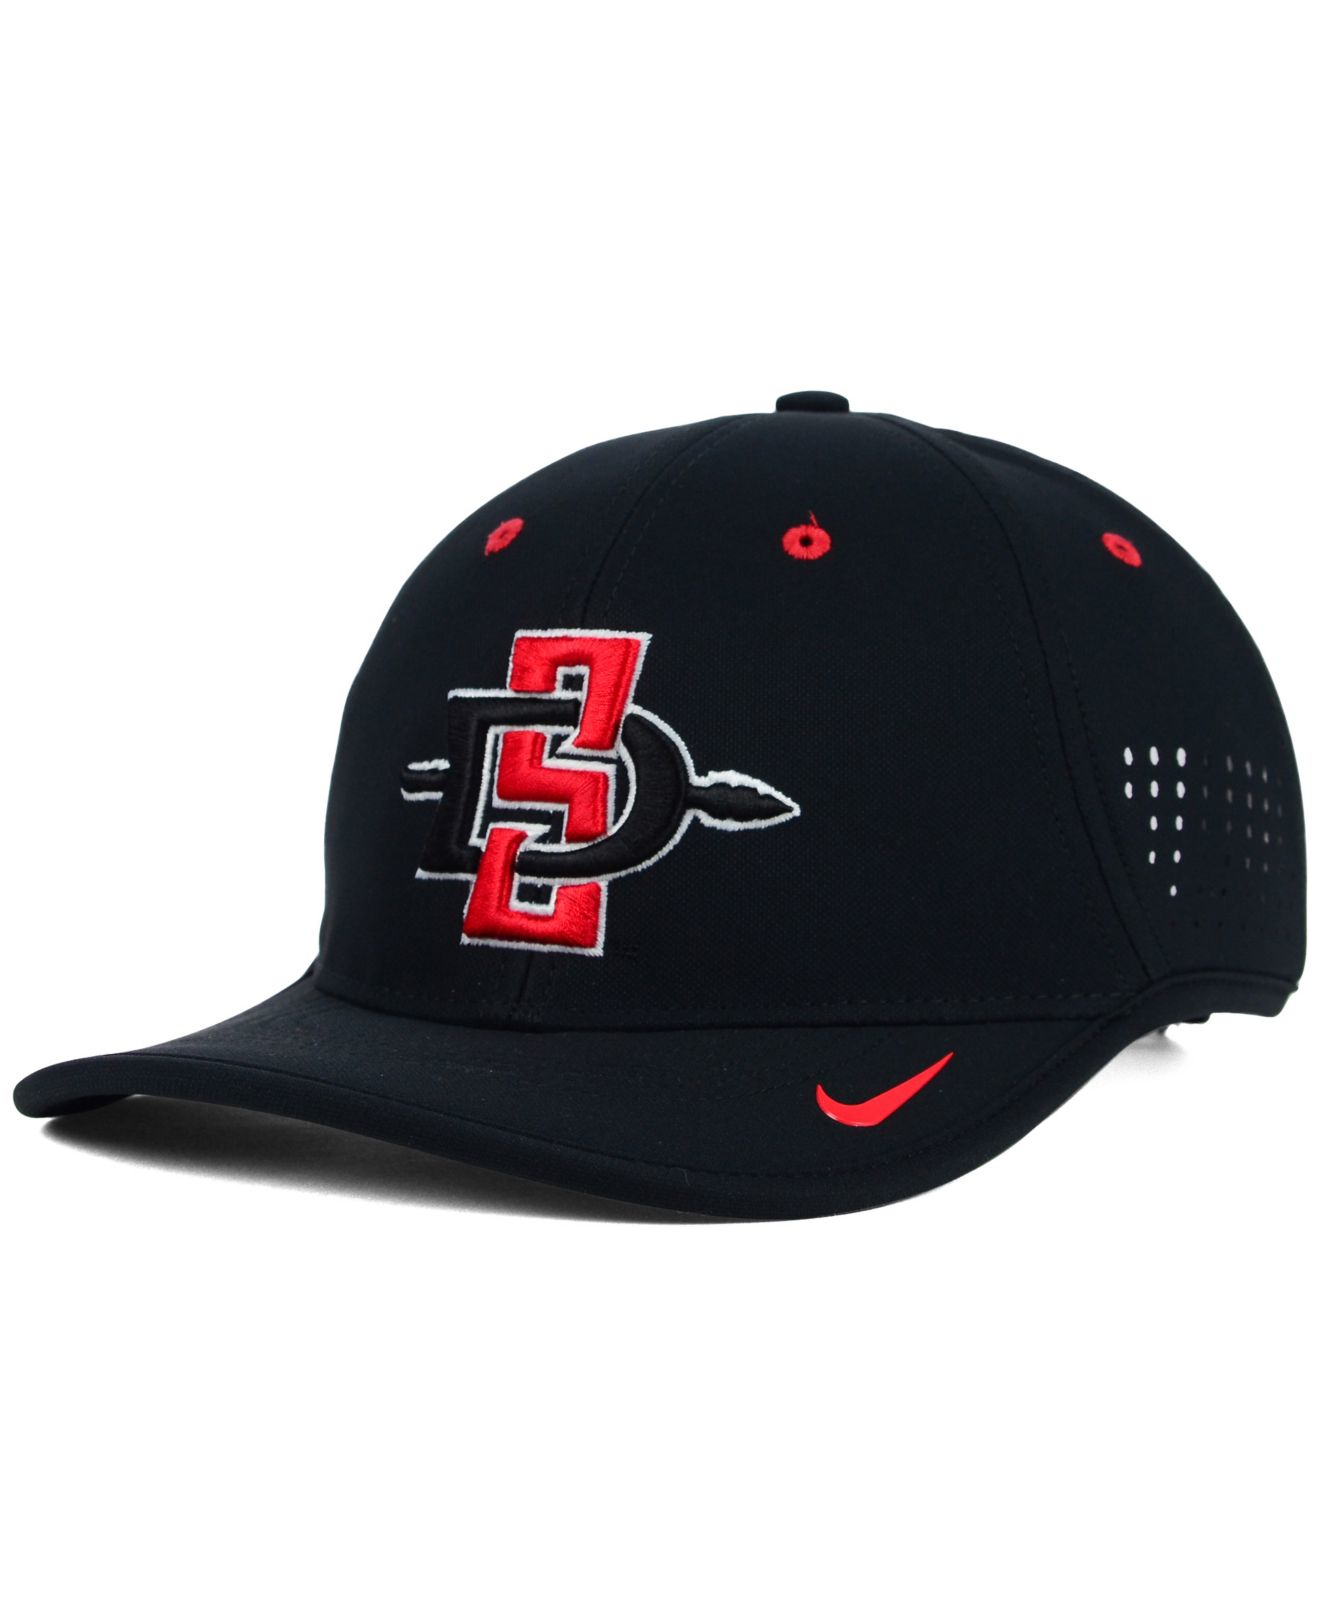 new concept 9ef4e a6ca8 Nike San Diego State Aztecs Coaches Dri-fit Cap in Black for Men - Lyst